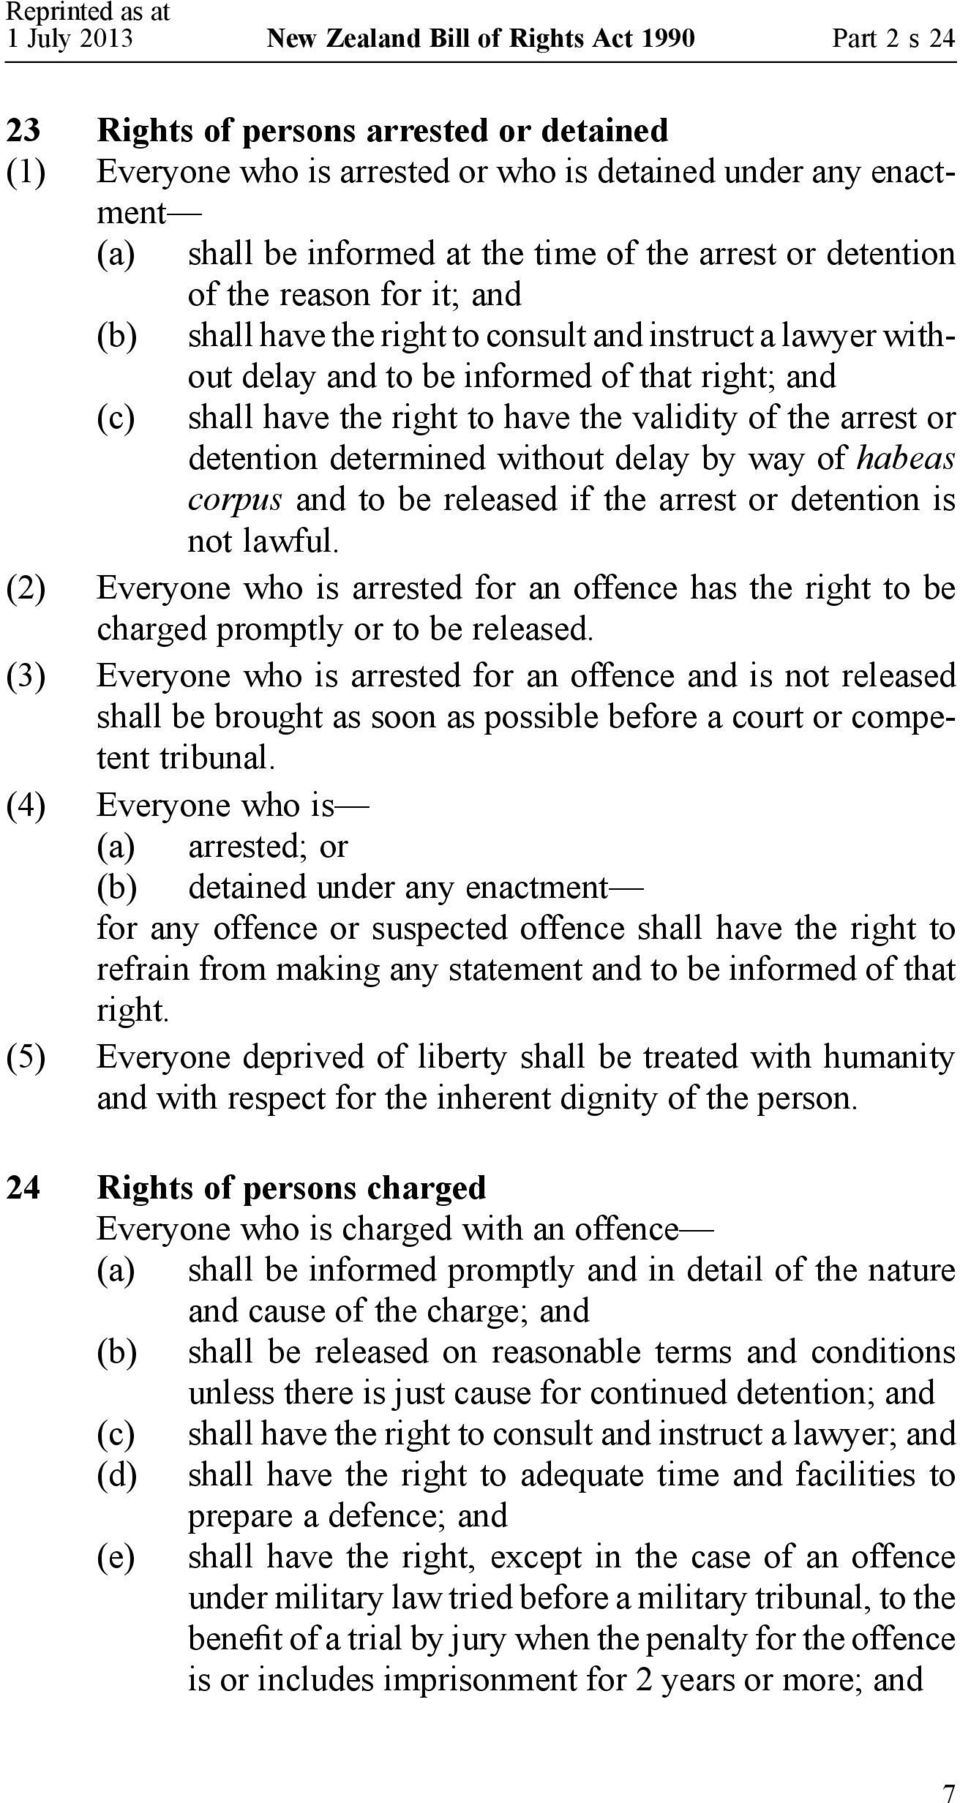 the right to have the validity of the arrest or detention determined without delay by way of habeas corpus and to be released if the arrest or detention is not lawful.